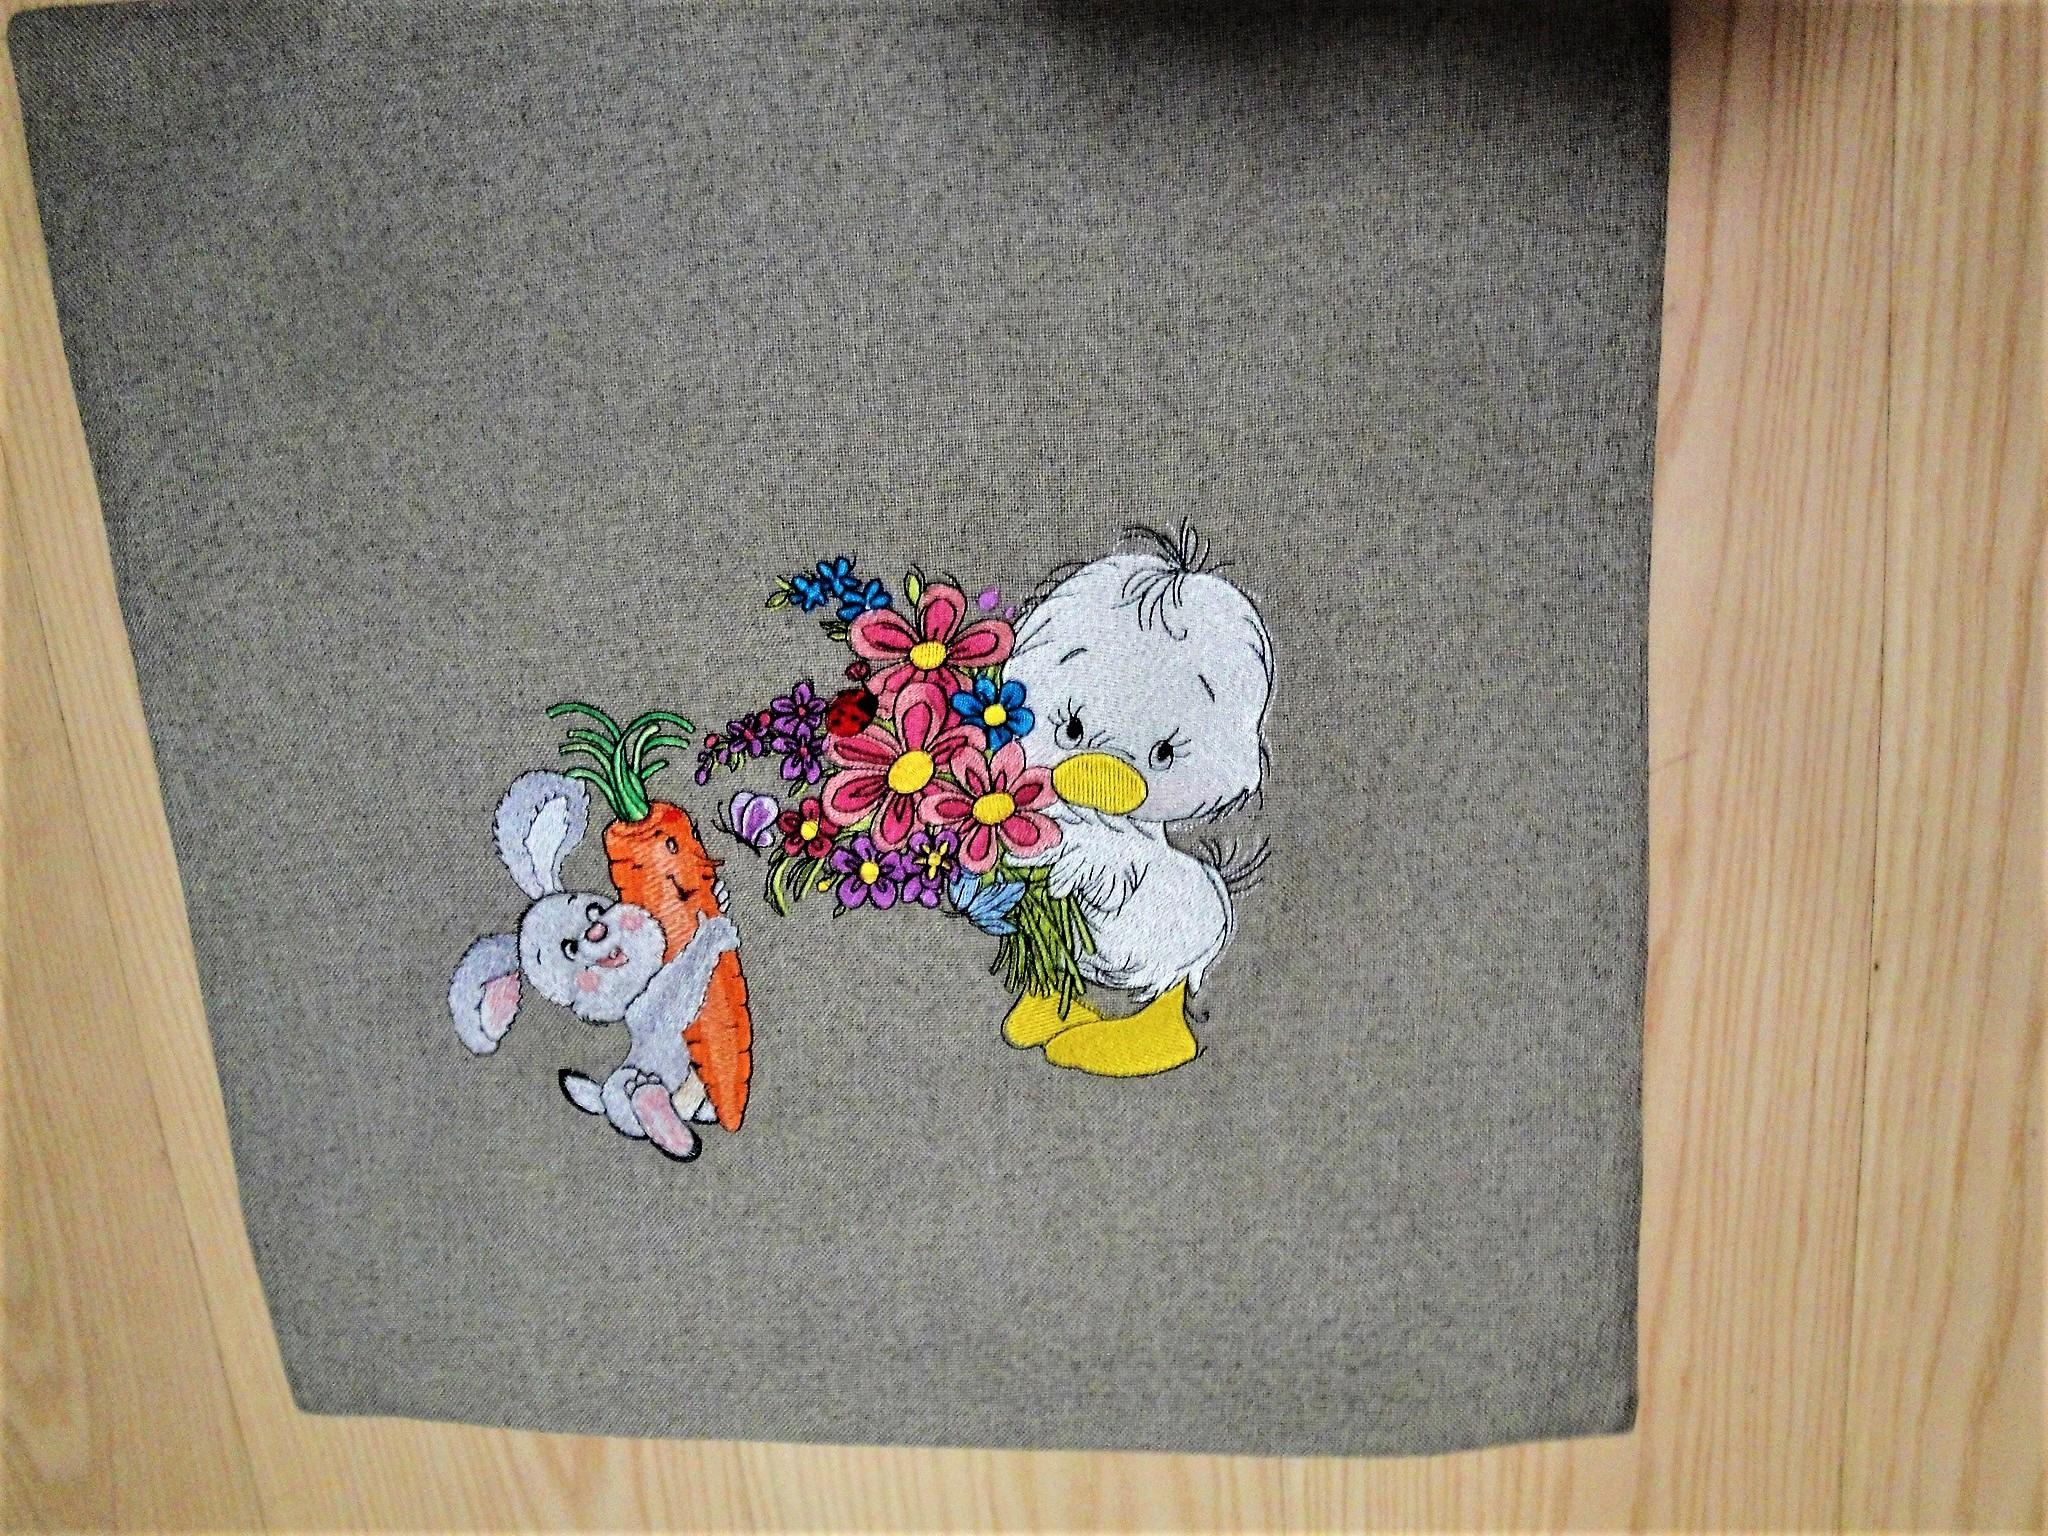 Cartoon characters embroidery design